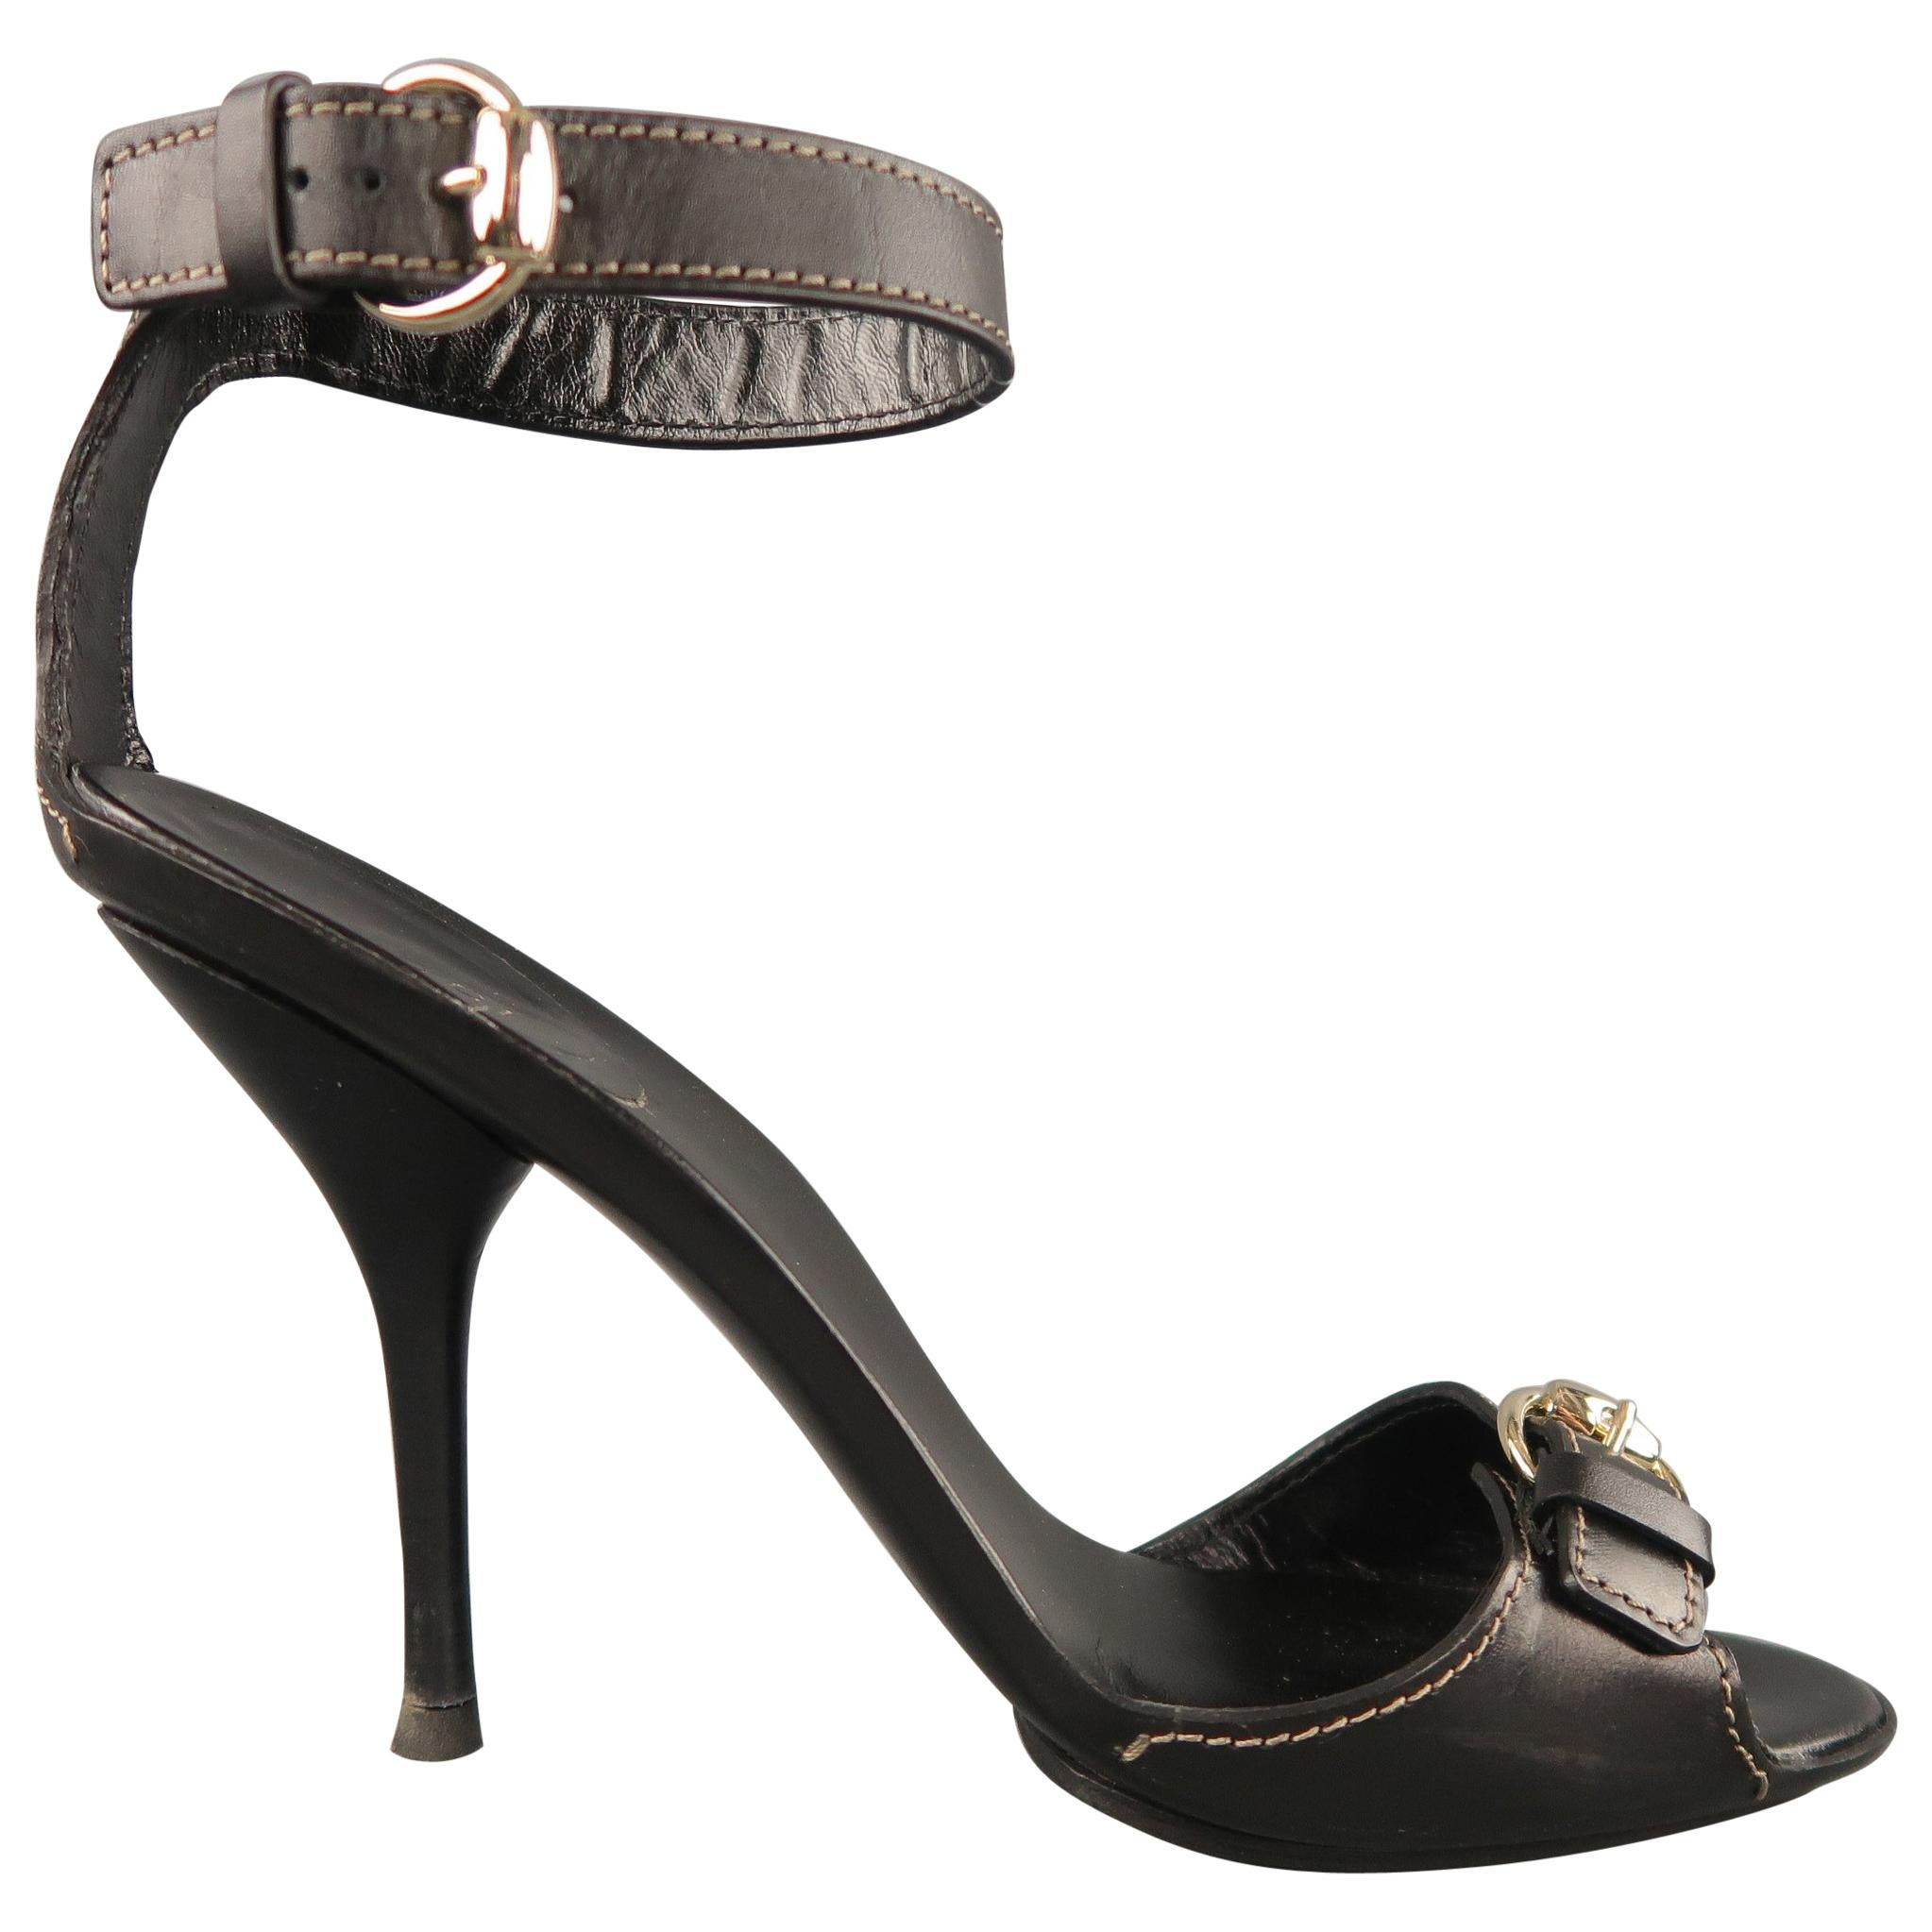 GUCCI Size 12 Black Leather Ankle Strap Gold Buckle Sandals